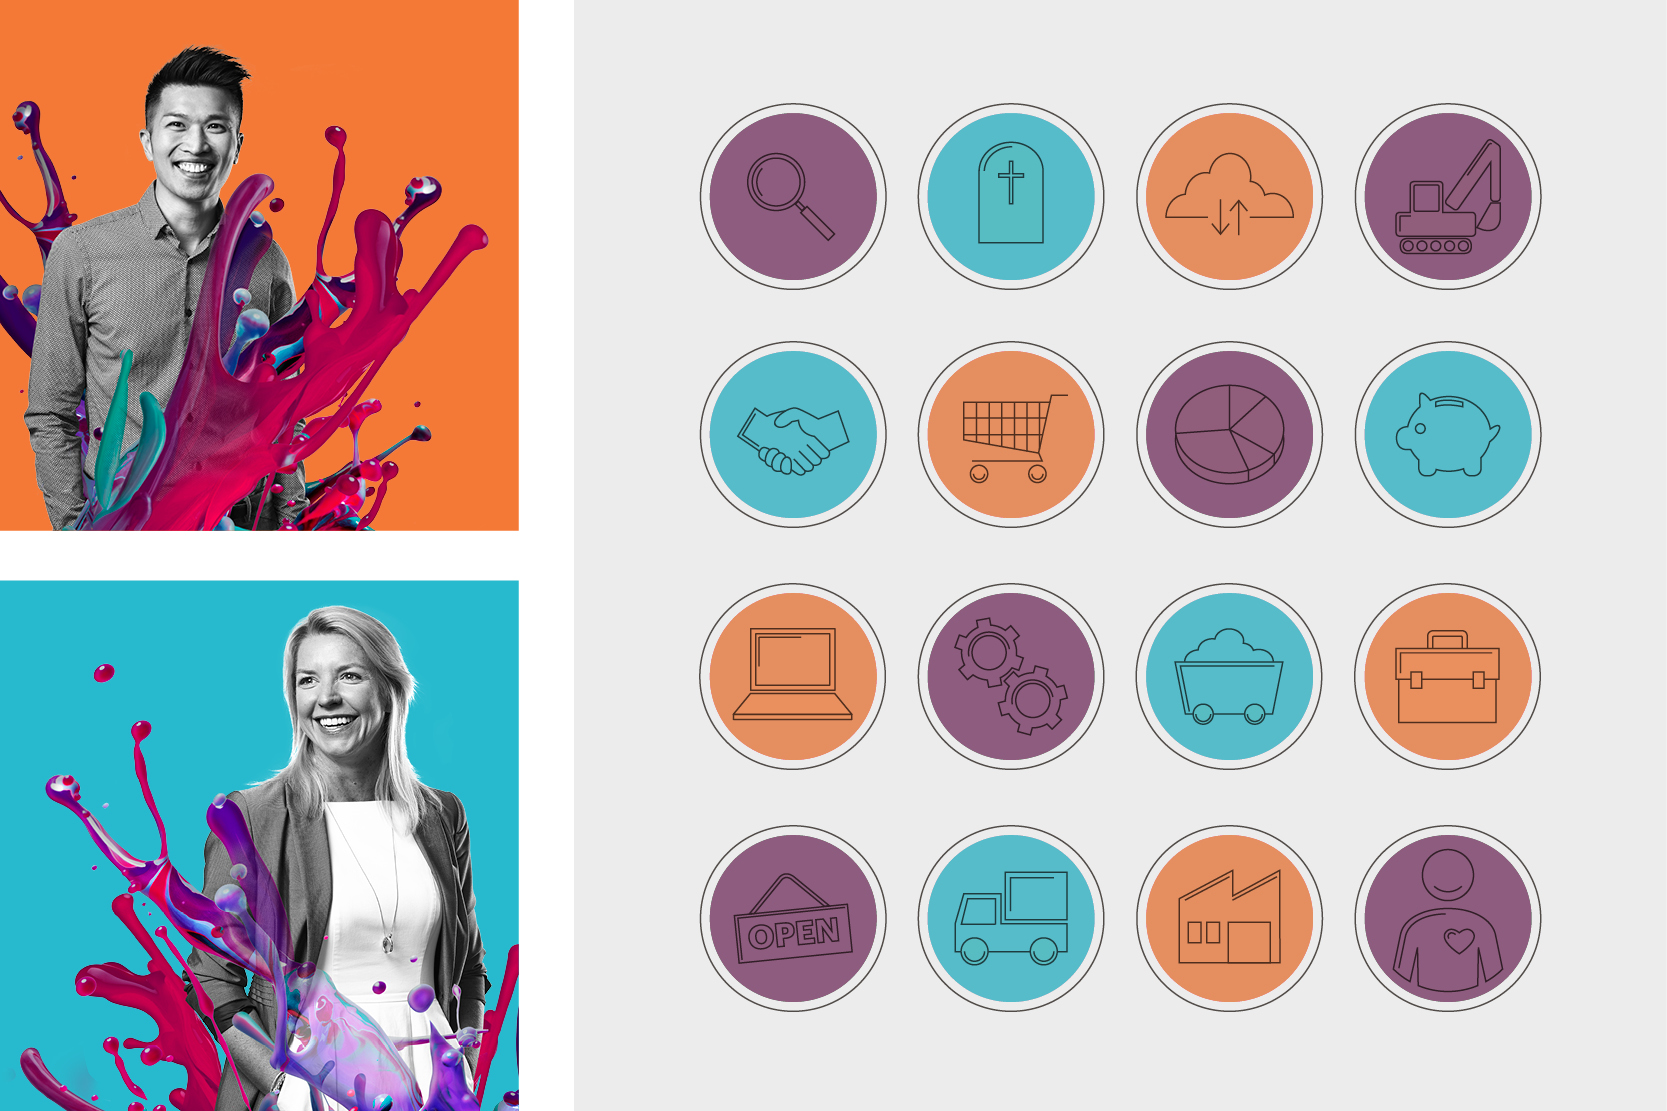 Enabling badges and brand identity